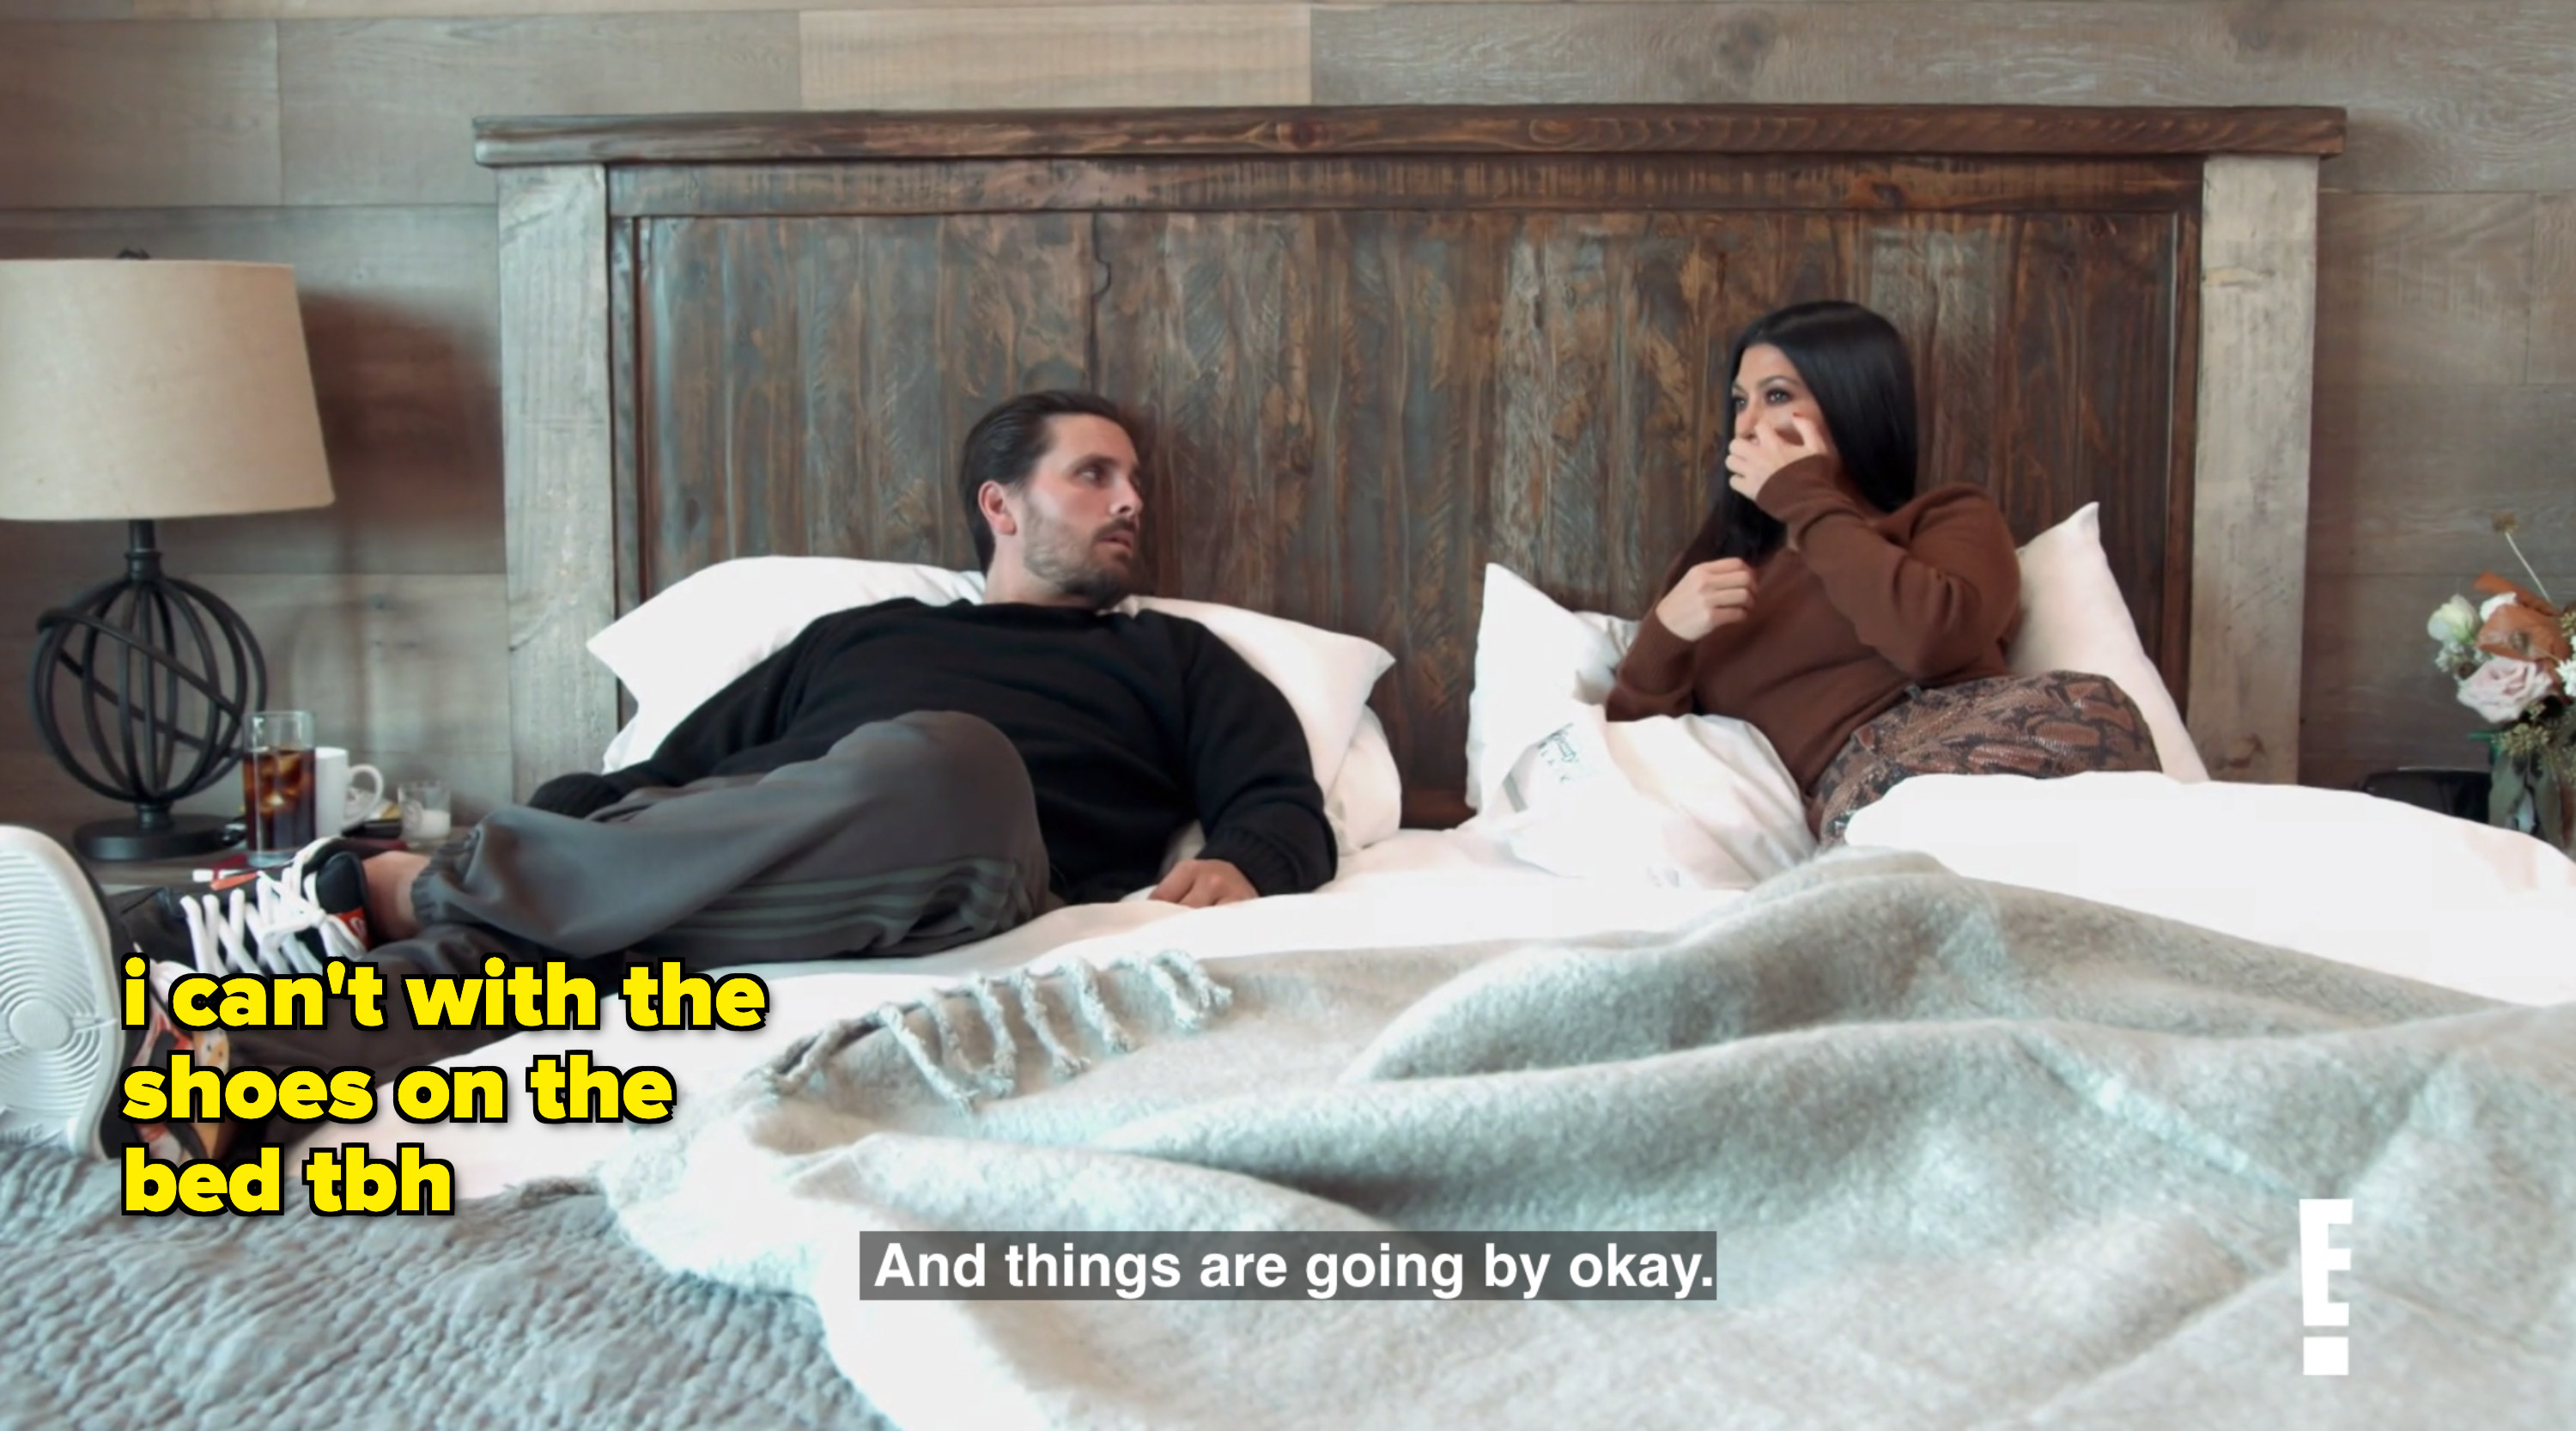 Scott and Kourt in bed saying things will be okay